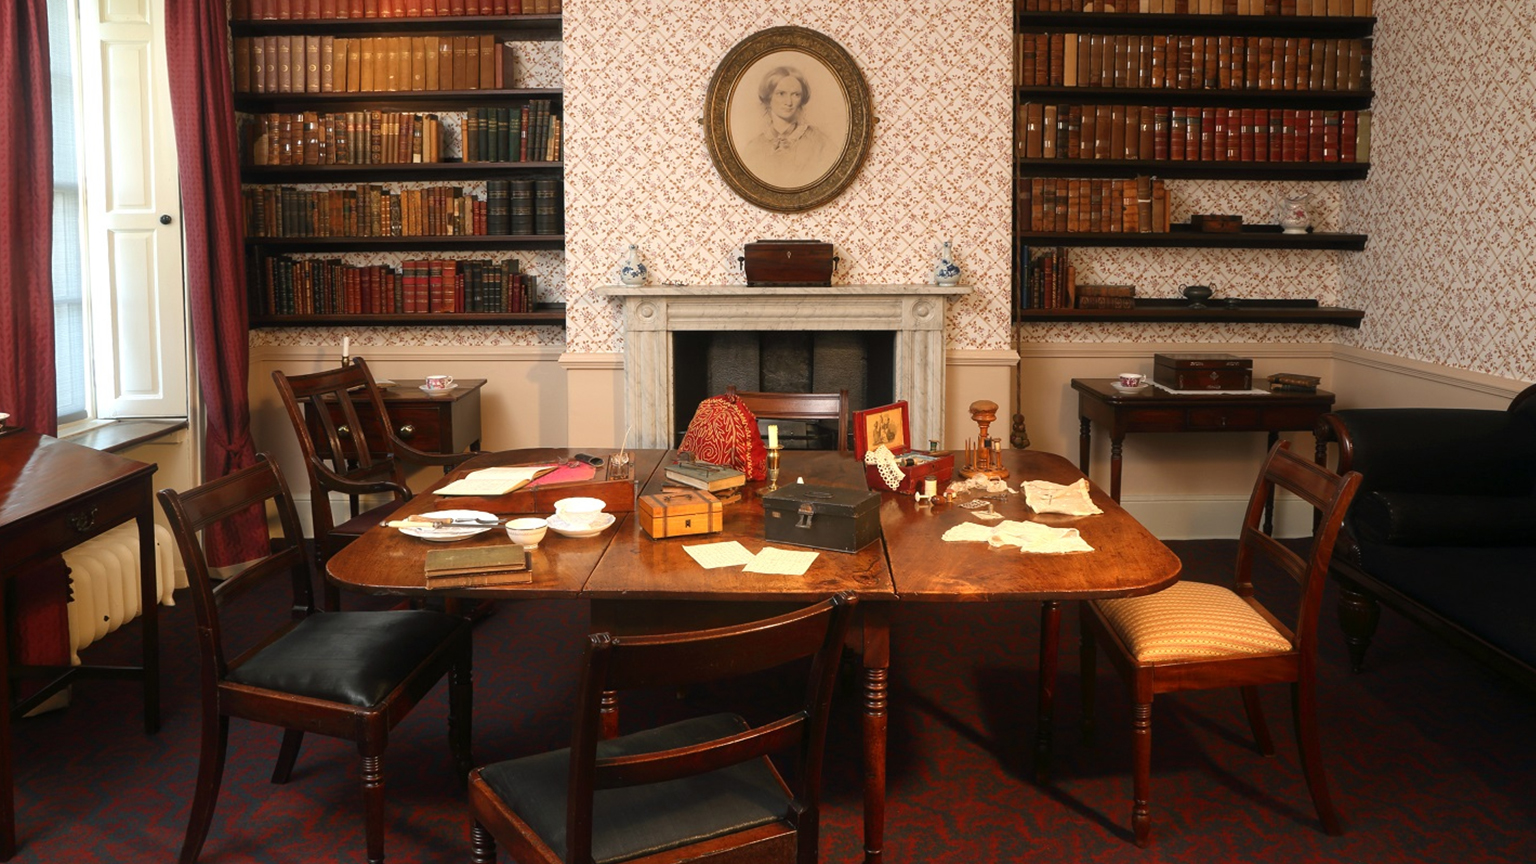 The table where the famous novels were written